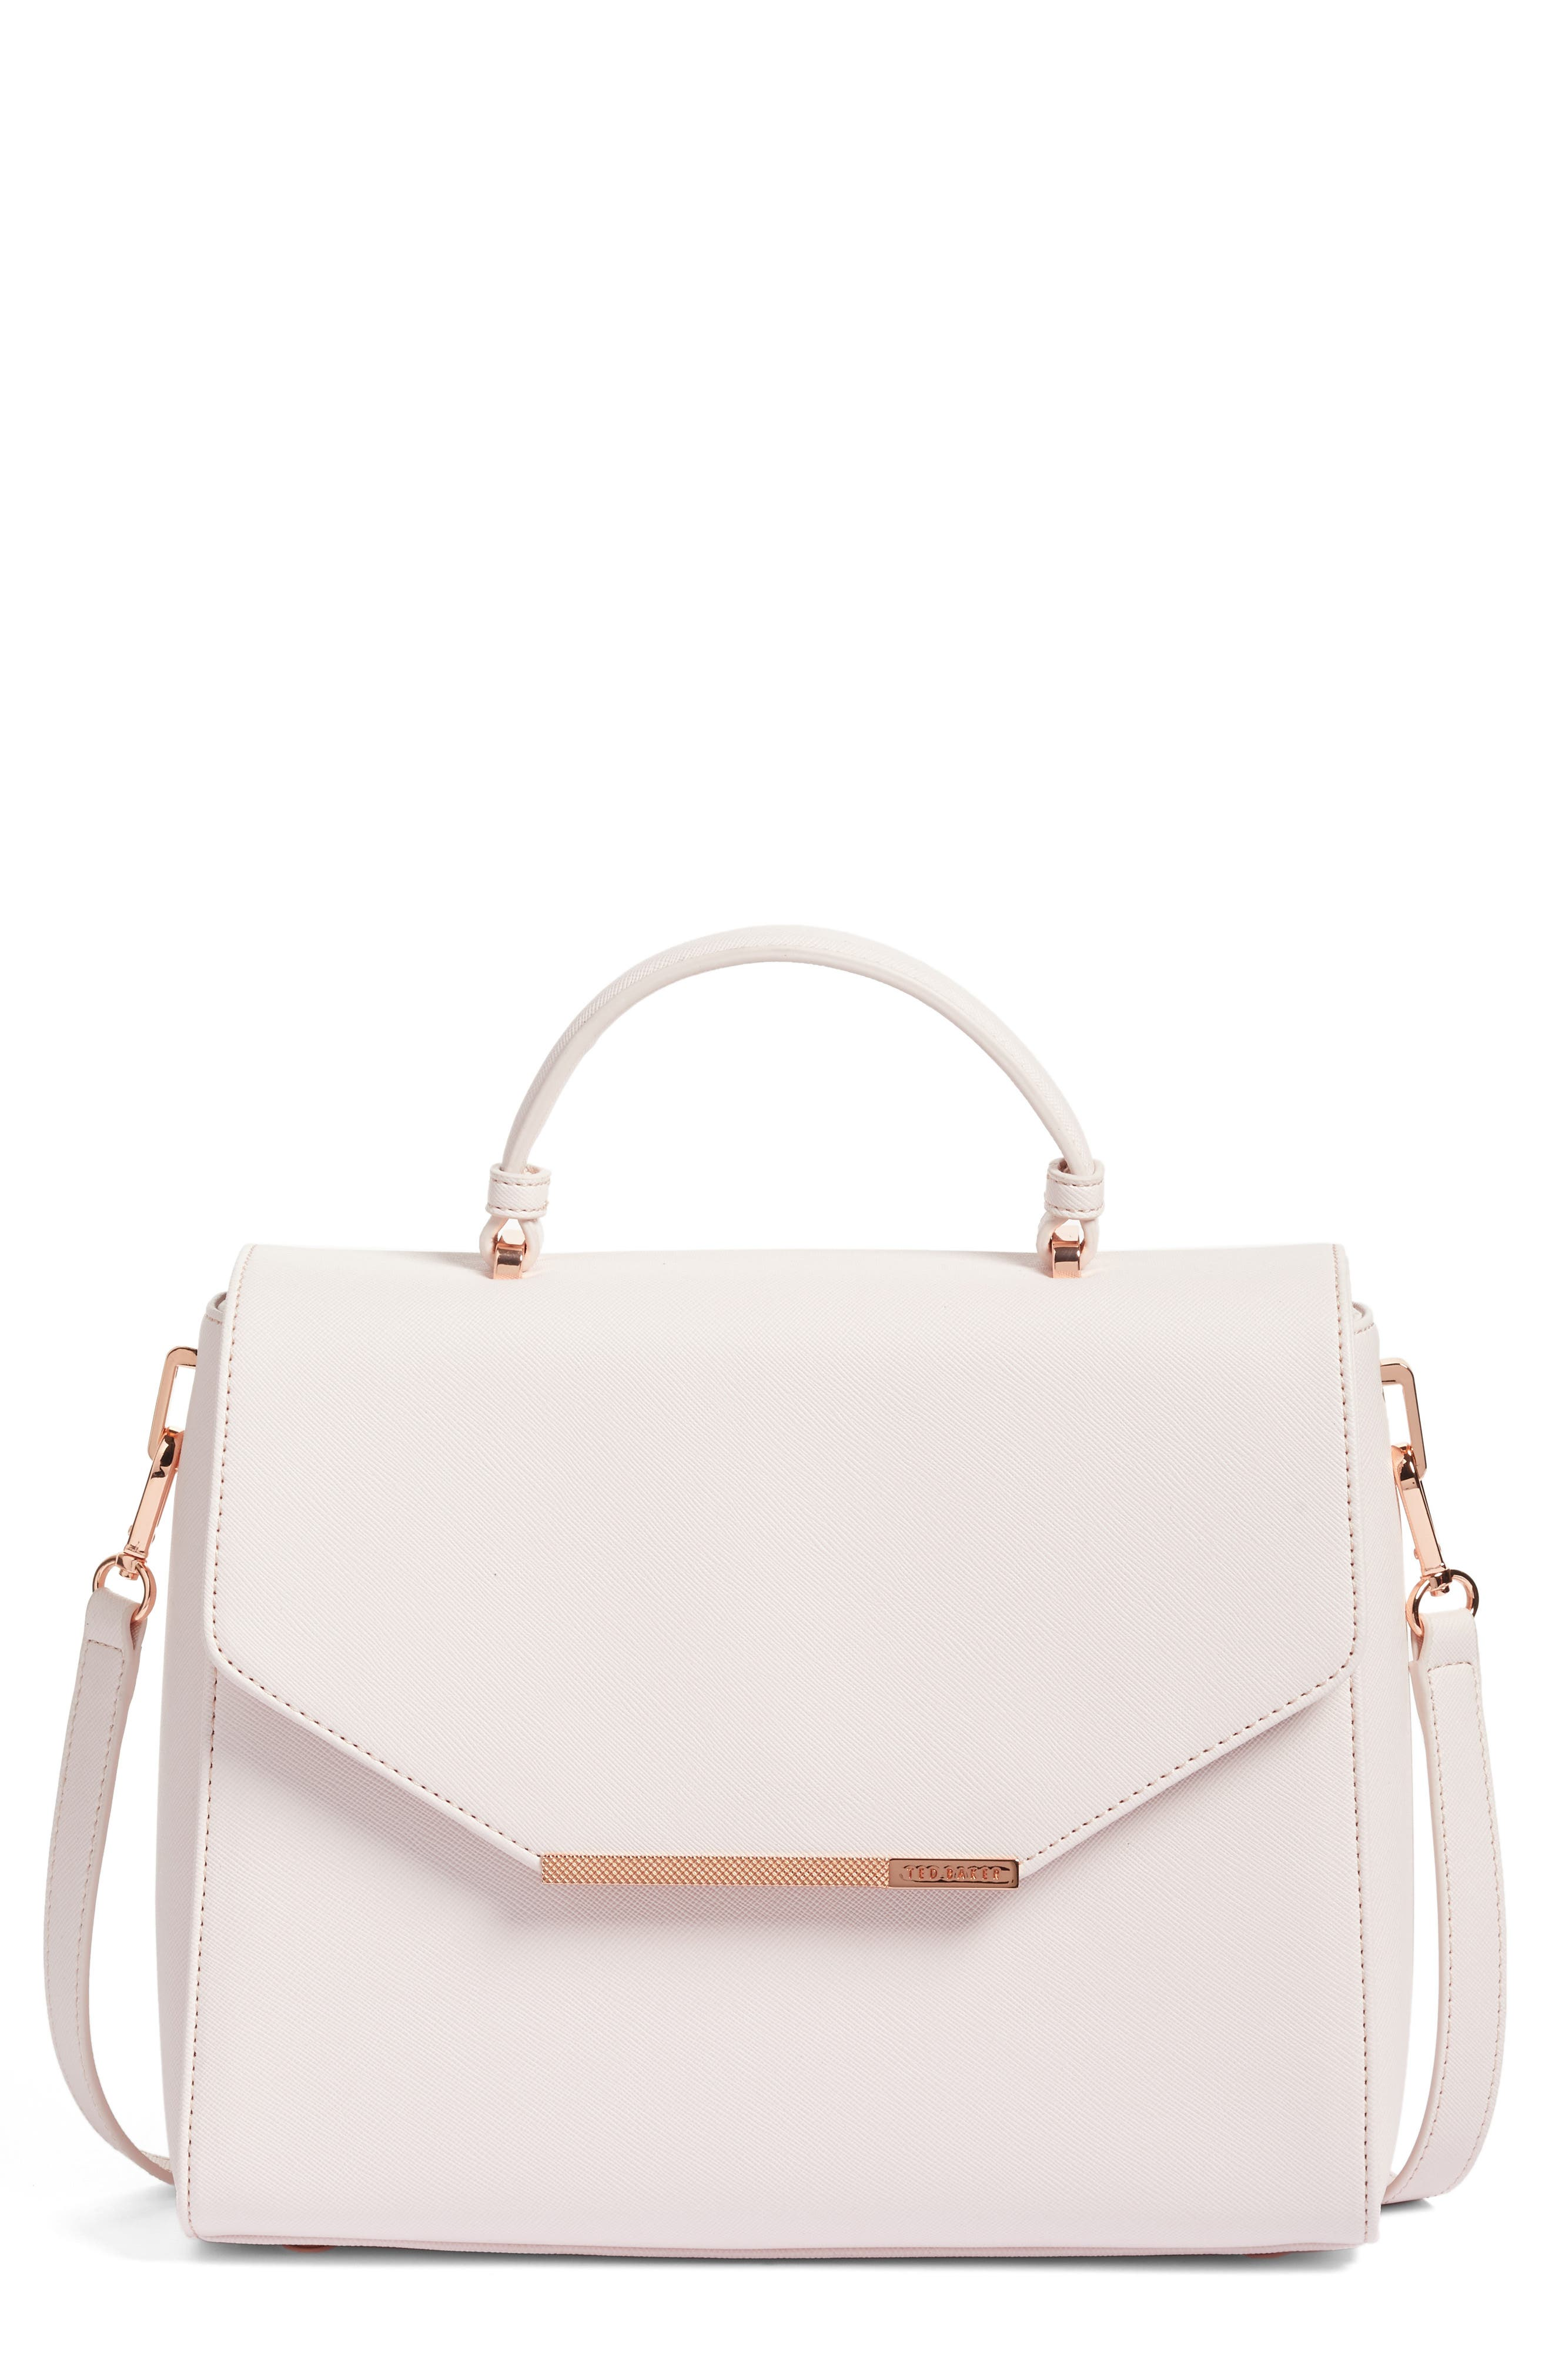 Main Image - Ted Baker London Large Dajana Faux Leather Top Handle Satchel (Nordstrom Exclusive)